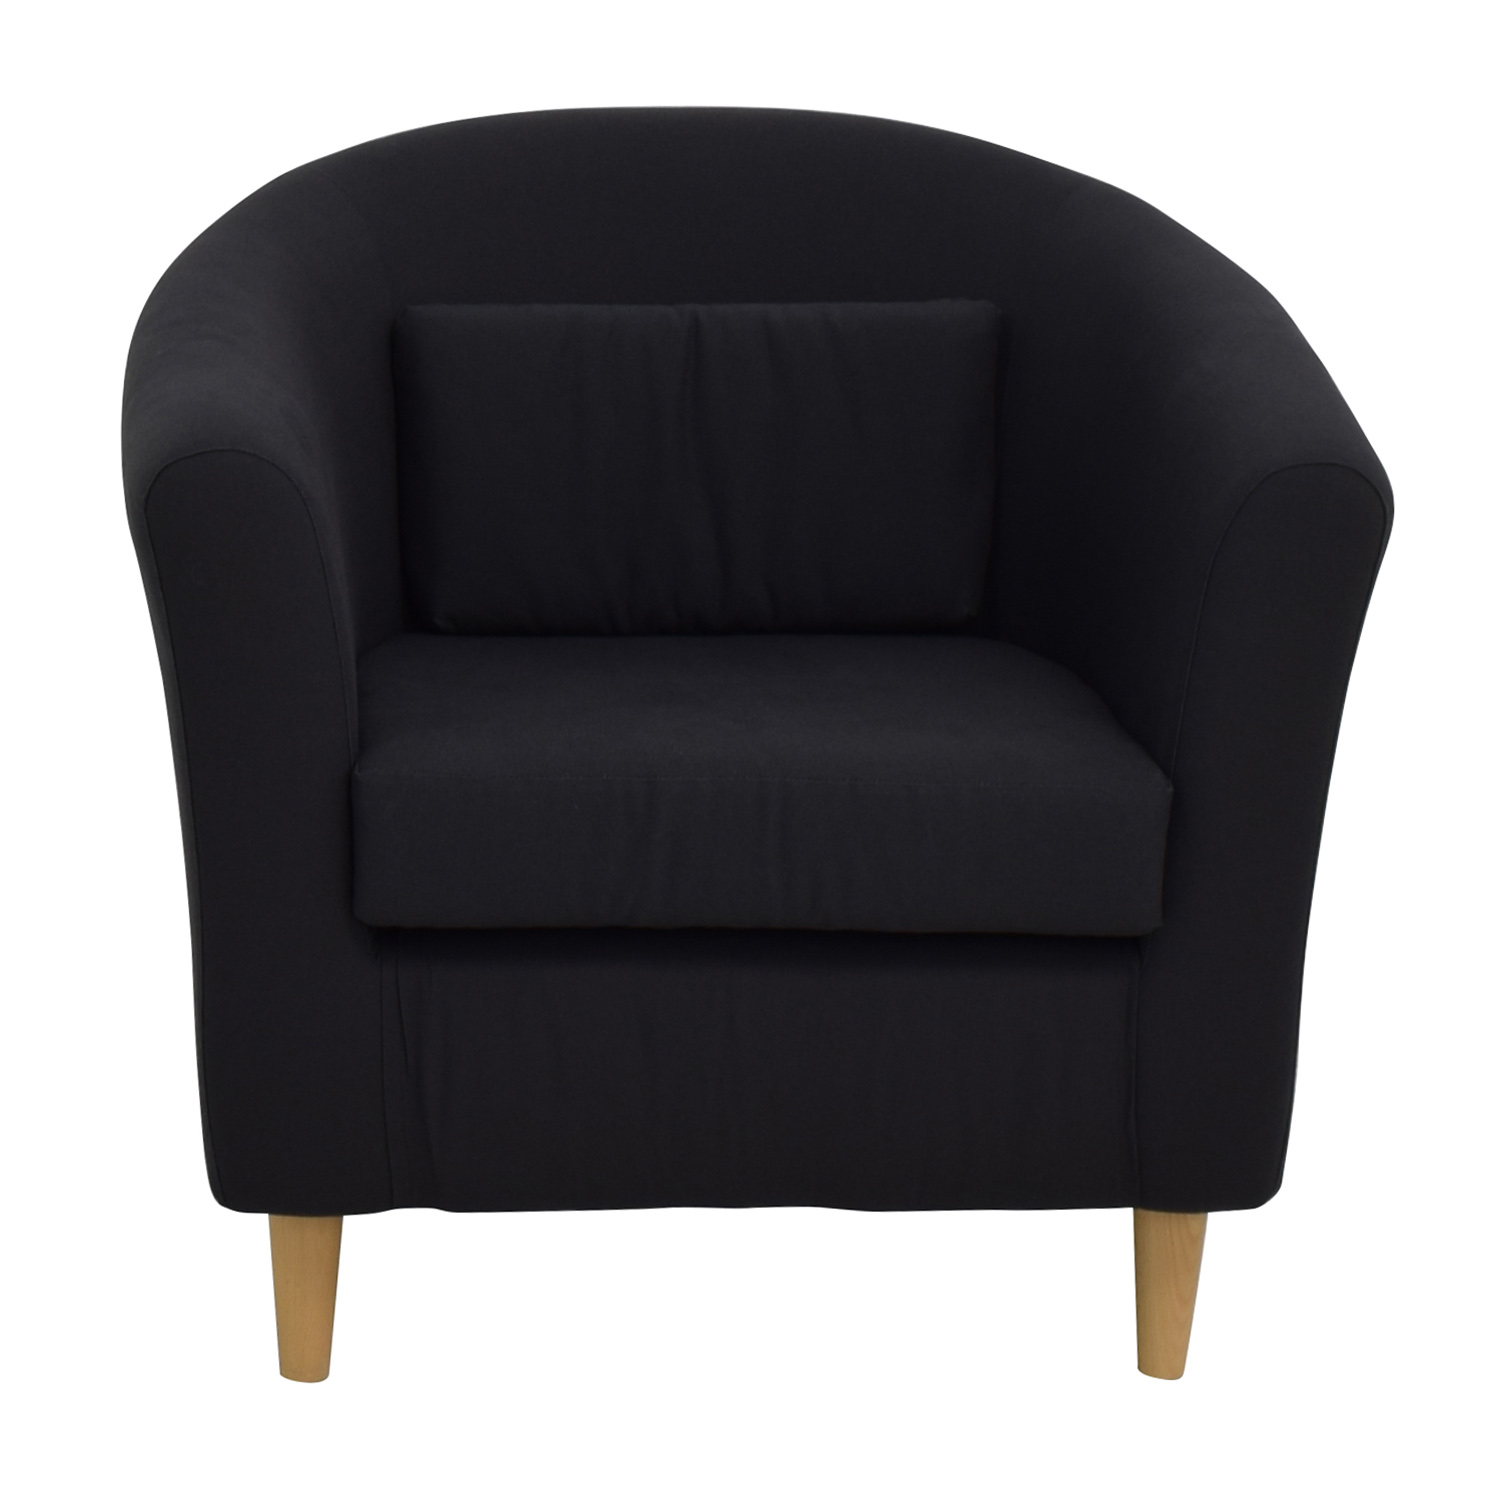 IKEA IKEA Tullsta Blue Accent Chair for sale ... - 60% OFF - IKEA IKEA Tullsta Blue Accent Chair / Chairs